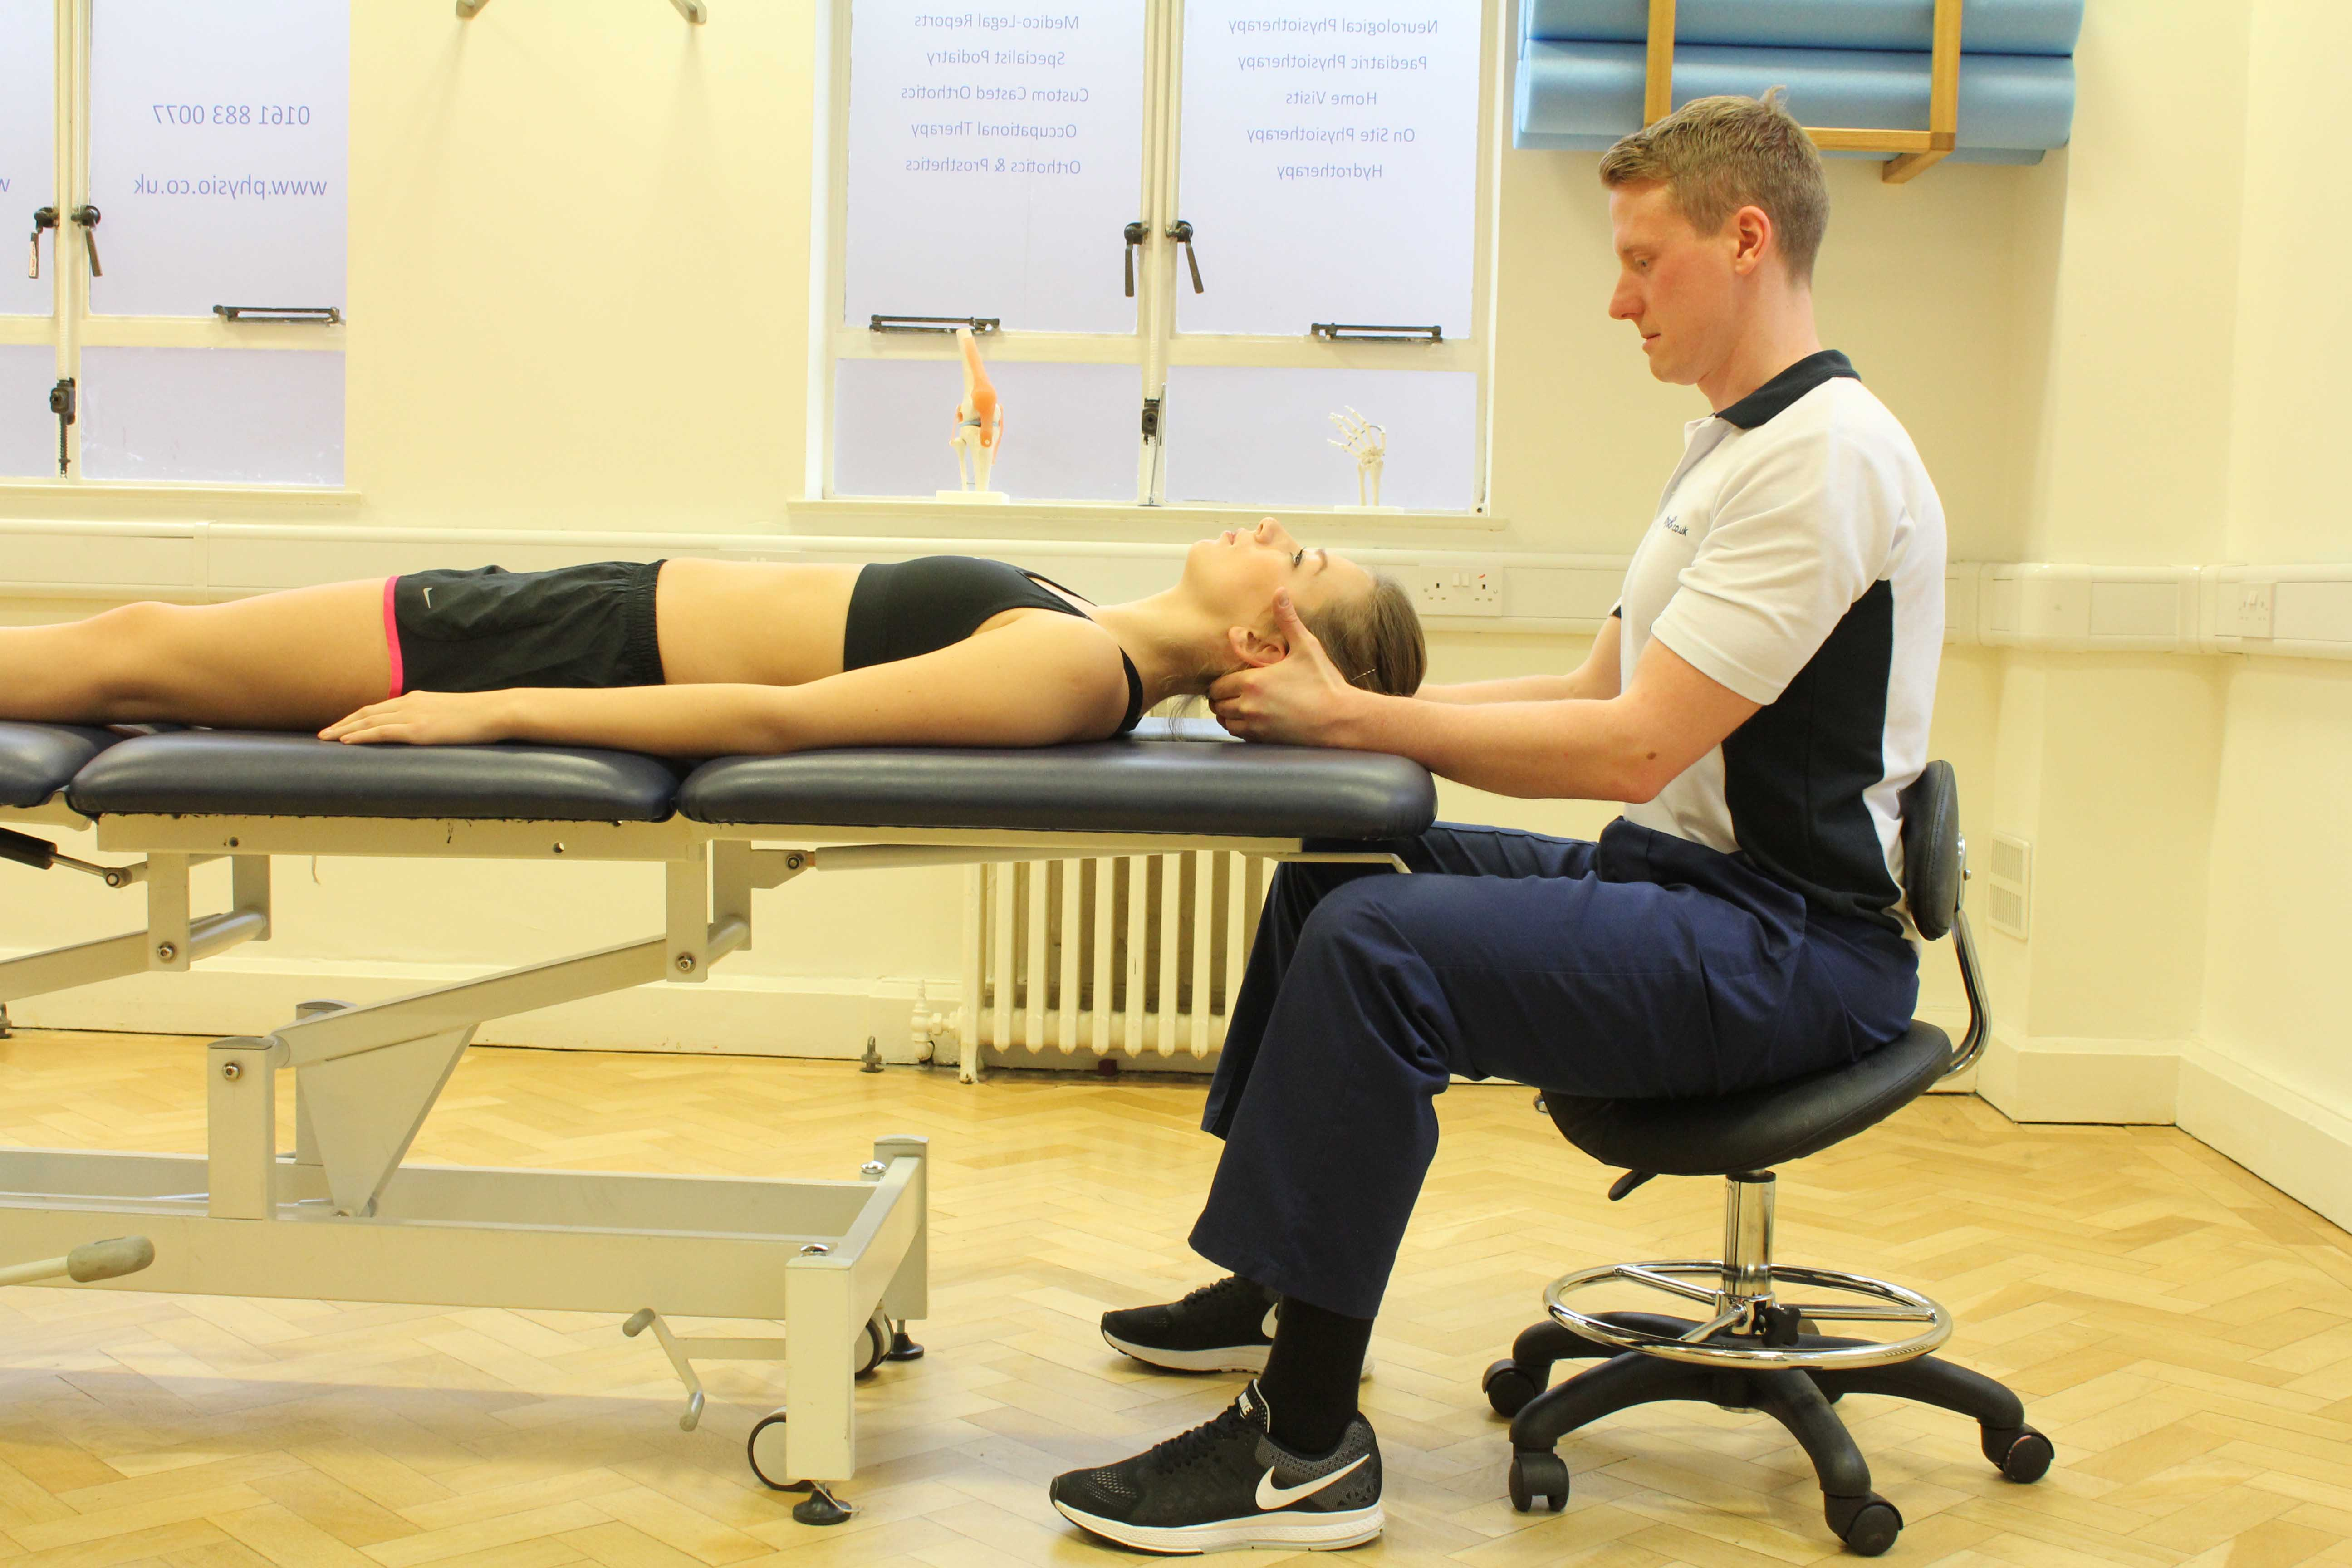 Mobilisations of the cervical vertebrea to reduce stiffness and any nerve impingement